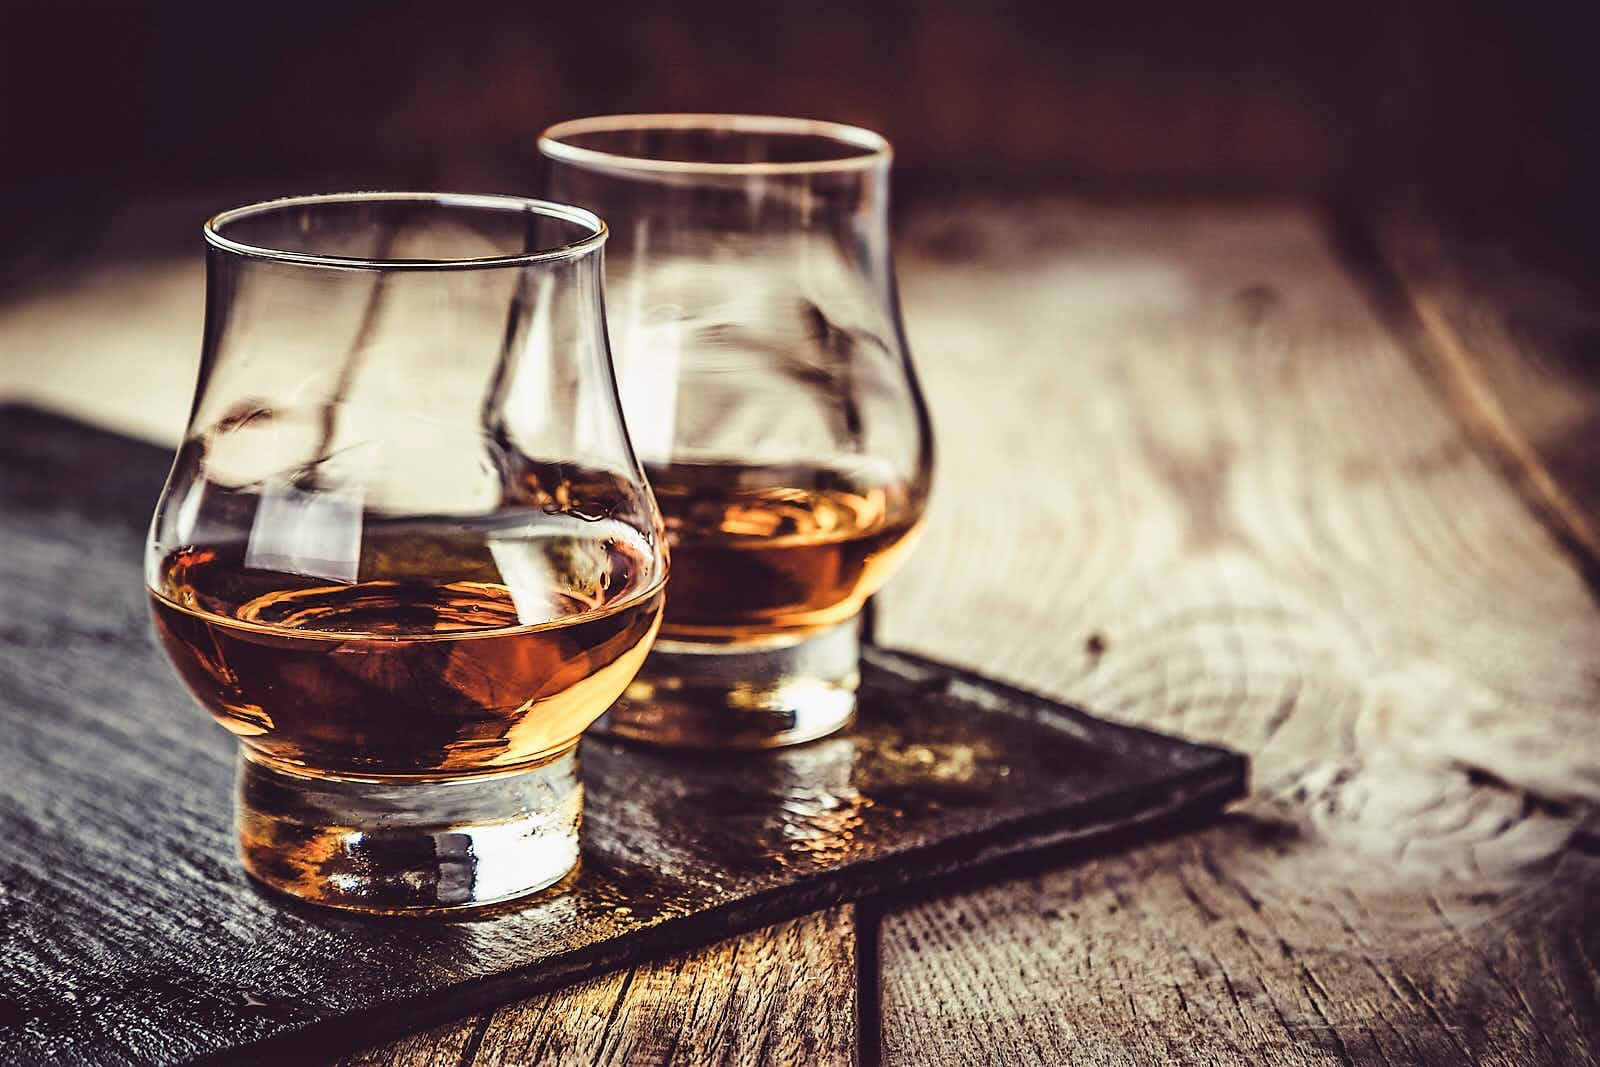 Close up shot of two glasses of whiskey set on a wooden table